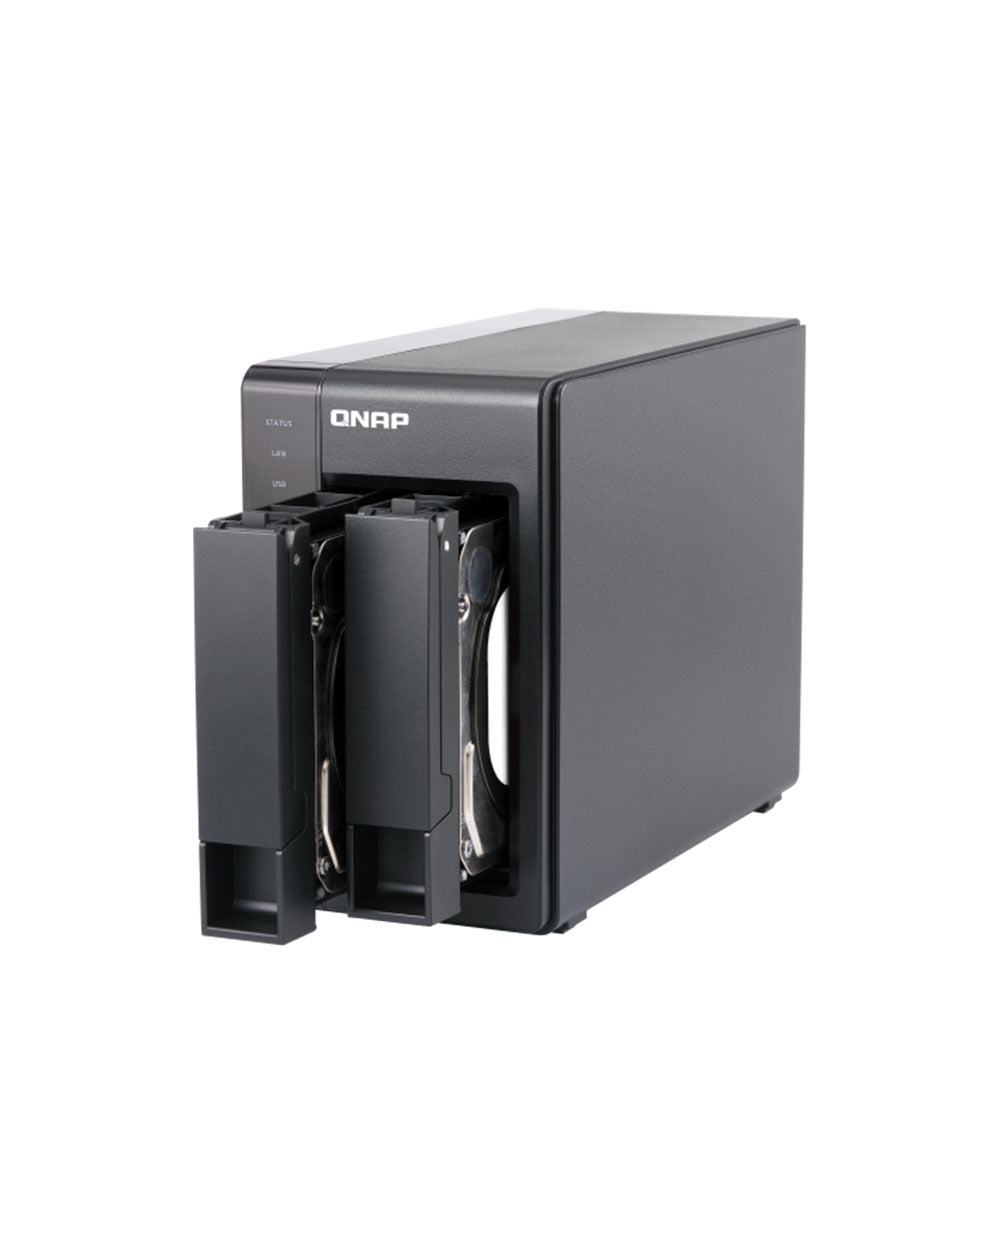 TS-251+-2G 16TB with 8TB Seagate Enterprise Drives